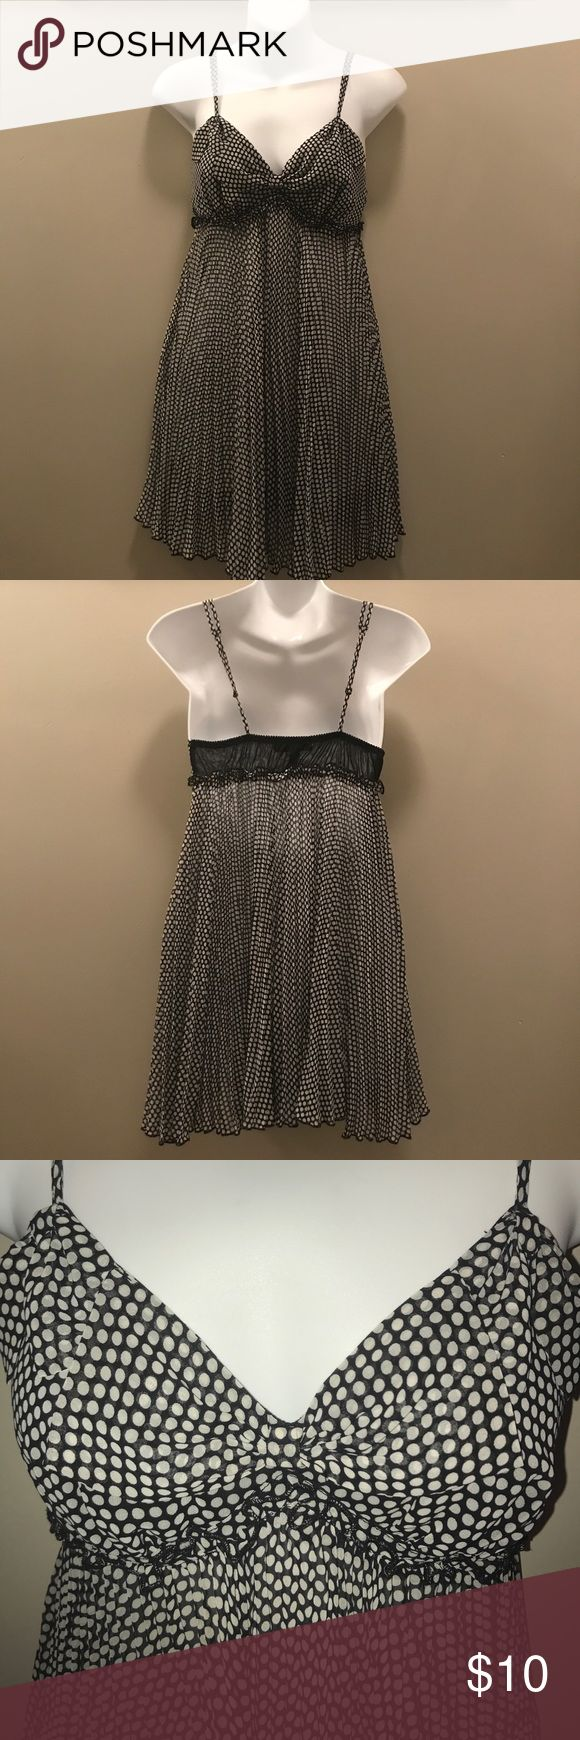 Betsey Johnson Polka Dot Nightie This Betsey Johnson Intimates Polka Dot Nightie is in good used condition. It has a bow detail on the front with a double strap detail. This has a ruffle detail along the bra line and a pleated style skirt. This is a size small. Betsey Johnson Intimates & Sleepwear Chemises & Slips